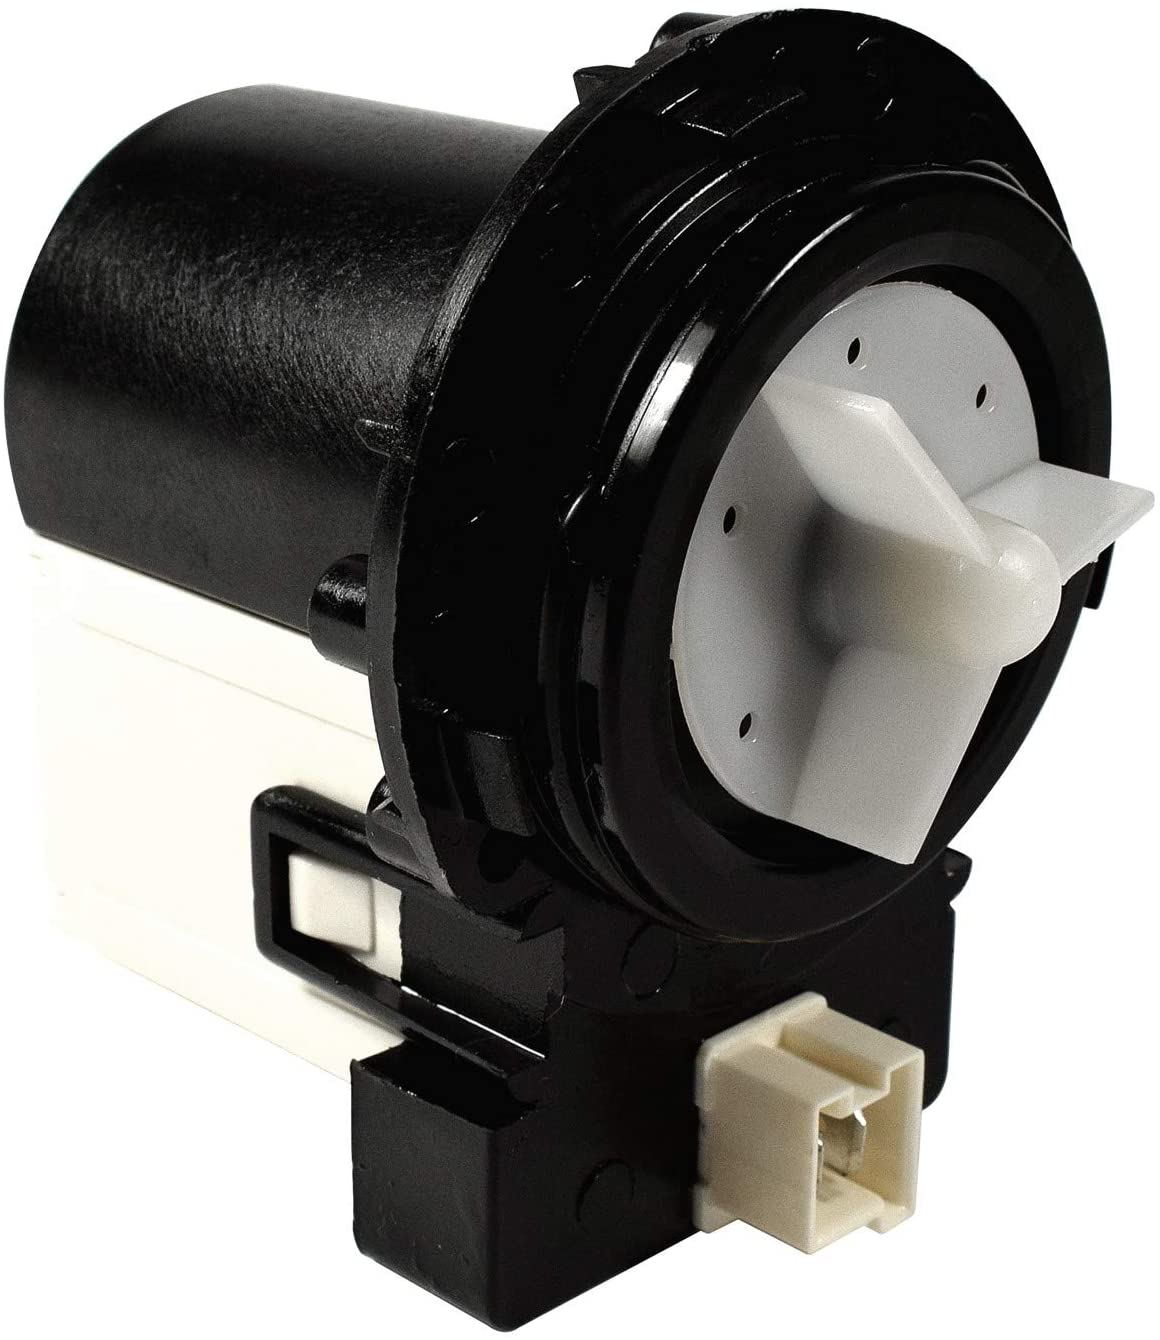 HQRP Washer Drain Pump compatible with Samsung DC31-00054A DC31-00016A Replacement fits WF203ANS WF316LAS WF328AAR WF337AAL WF409SNL WF448AAE WF520ABP WMSVC1 Washing Machines